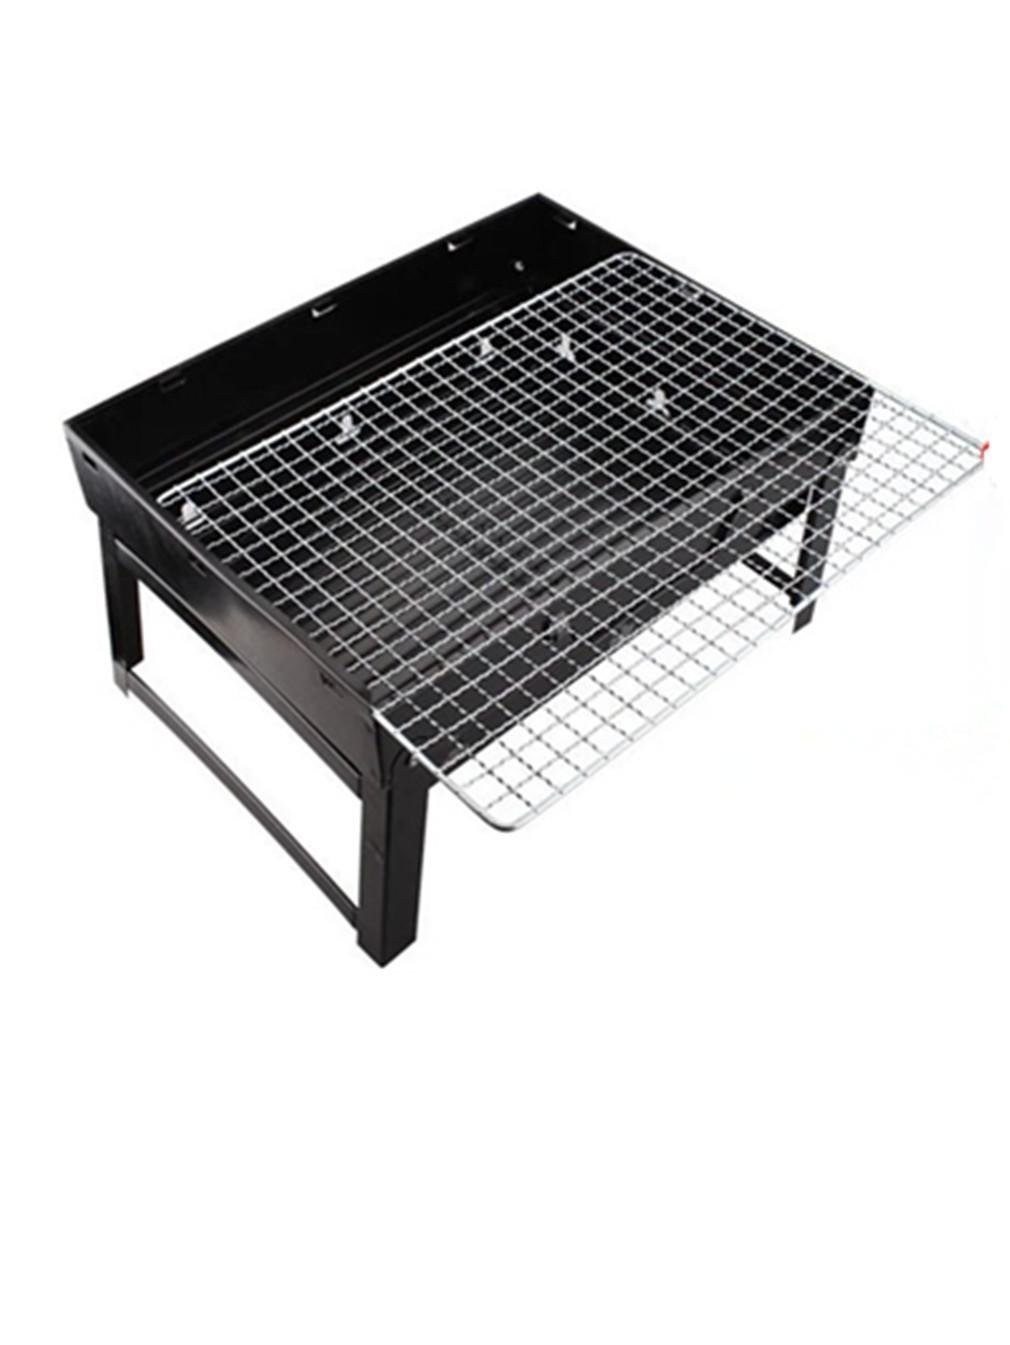 Amazon.com : Folding Home Barbecue Grill Outdoor Portable Charcoal BBQ Stove, Stainless Steel Black. : Sports & Outdoors